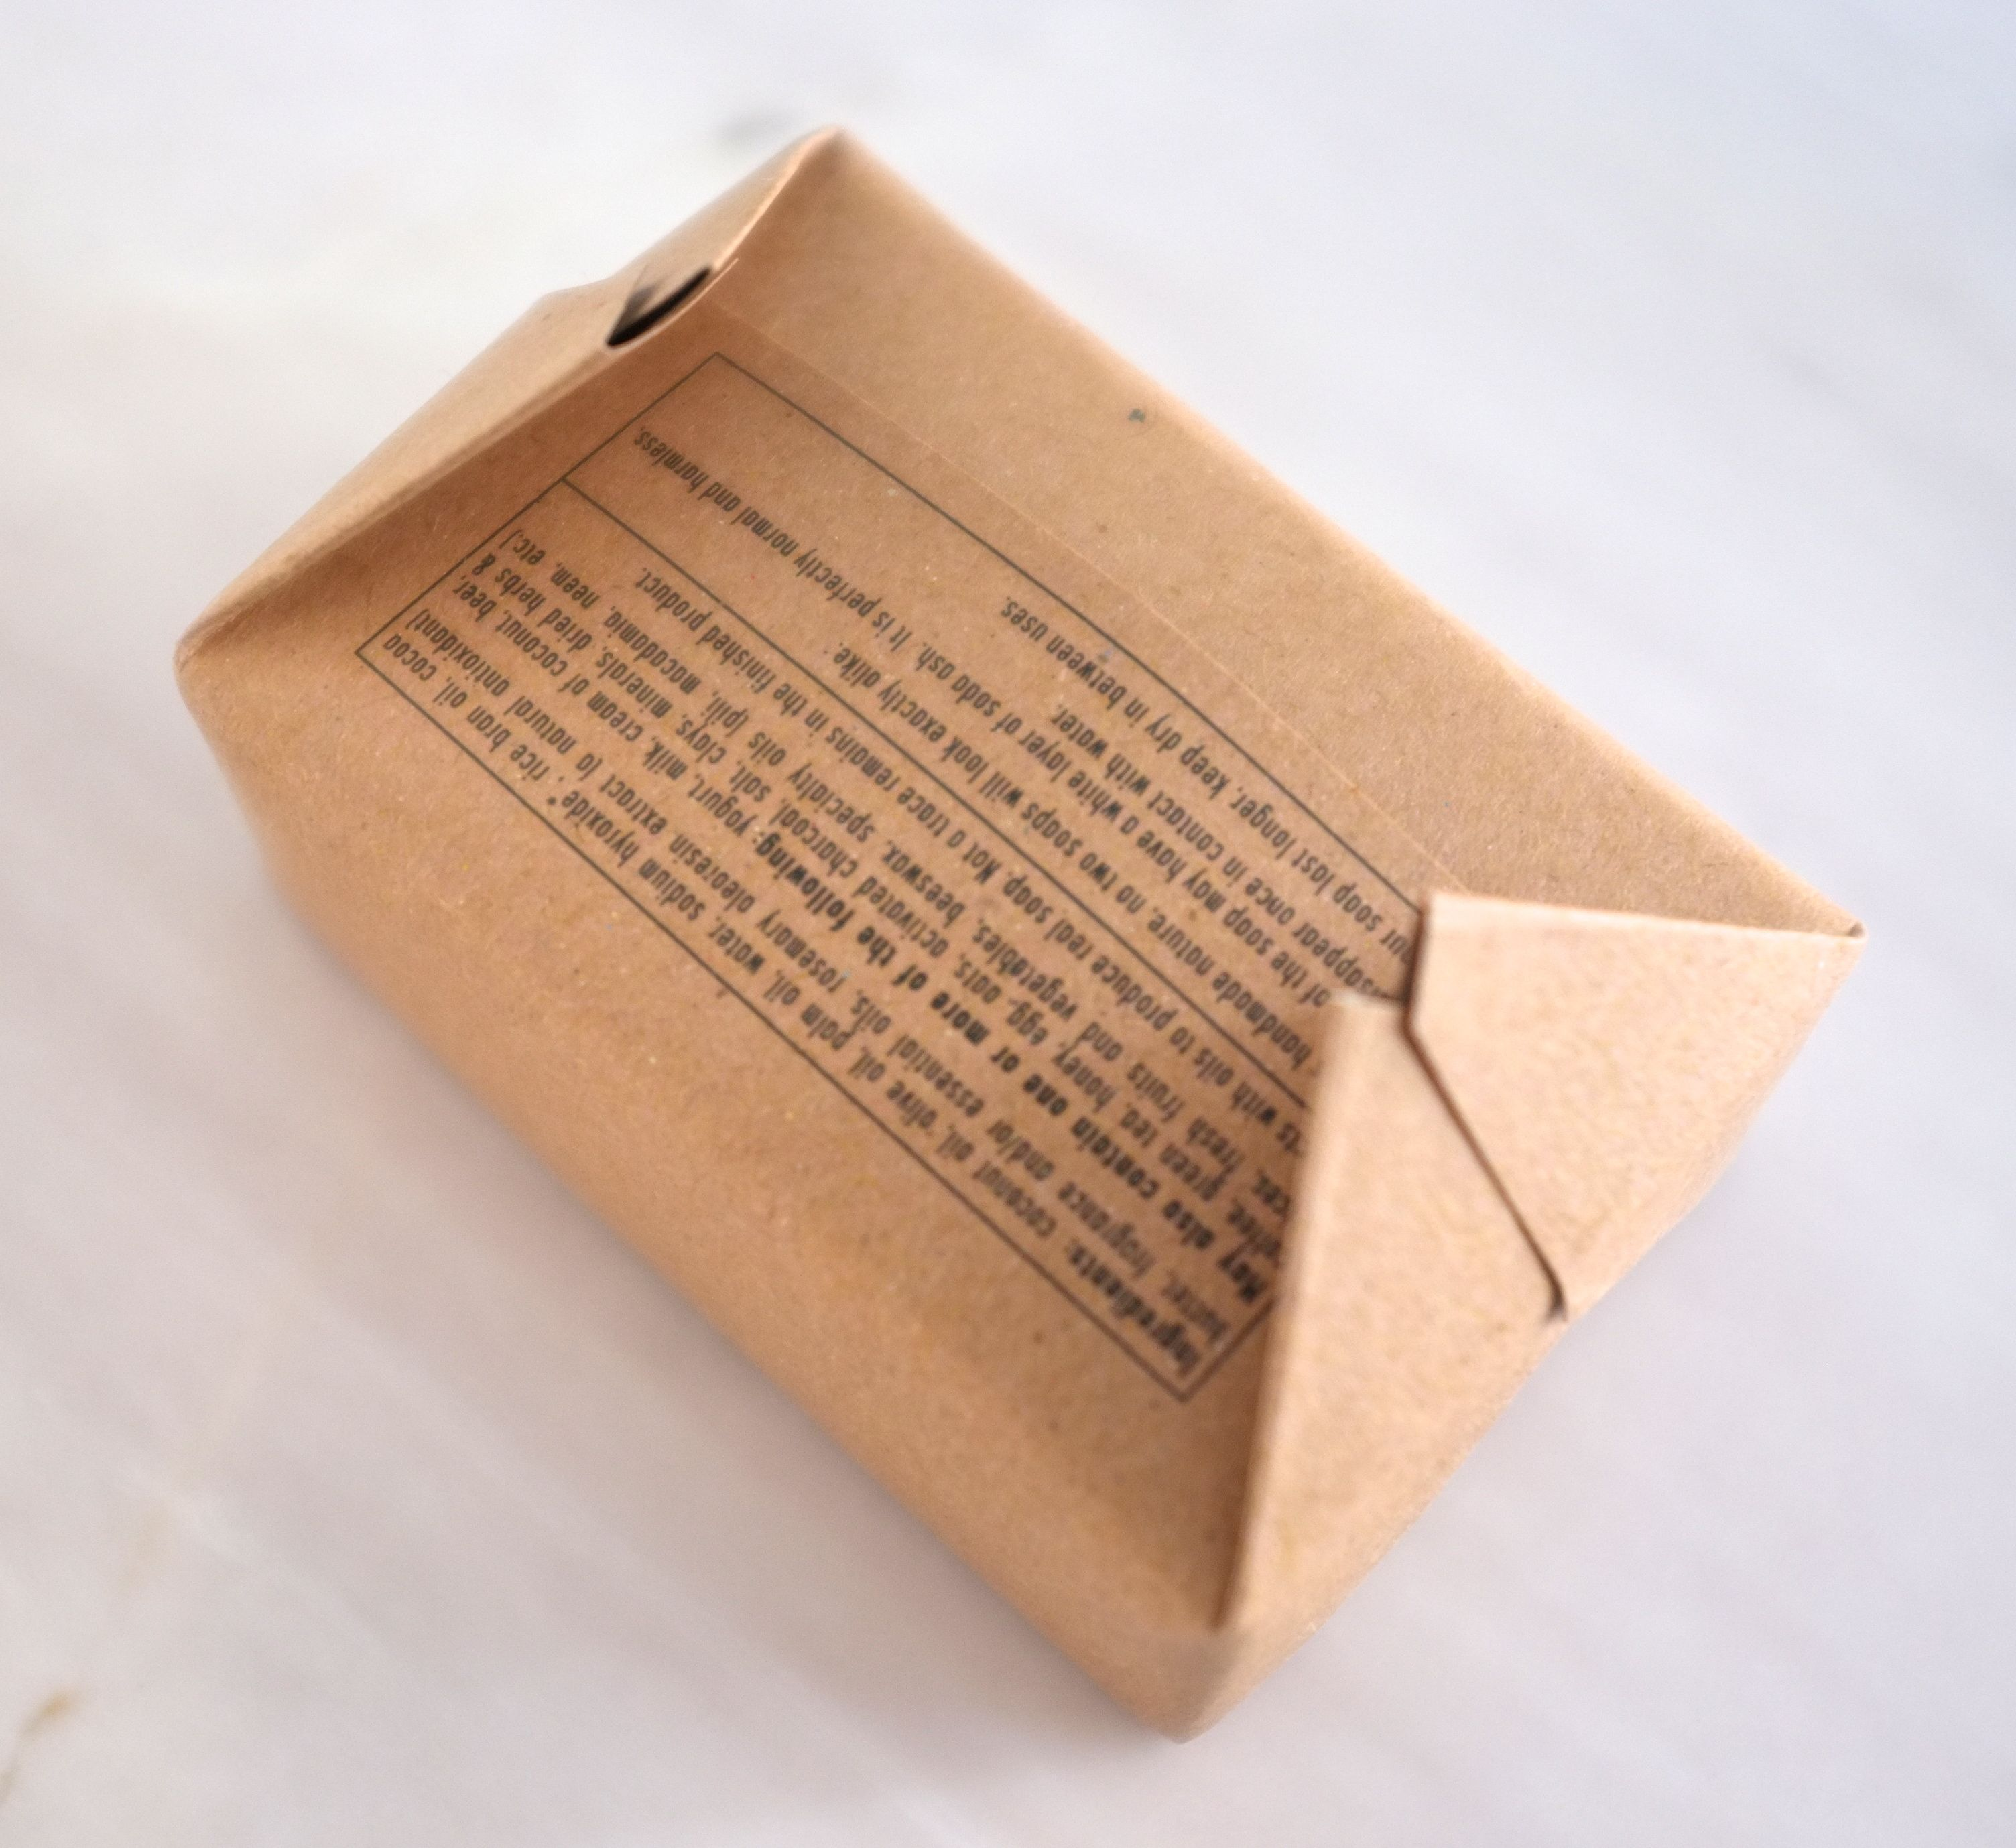 paper soap Find great deals on ebay for soap wrapping paper in soap bags and packaging materials shop with confidence.